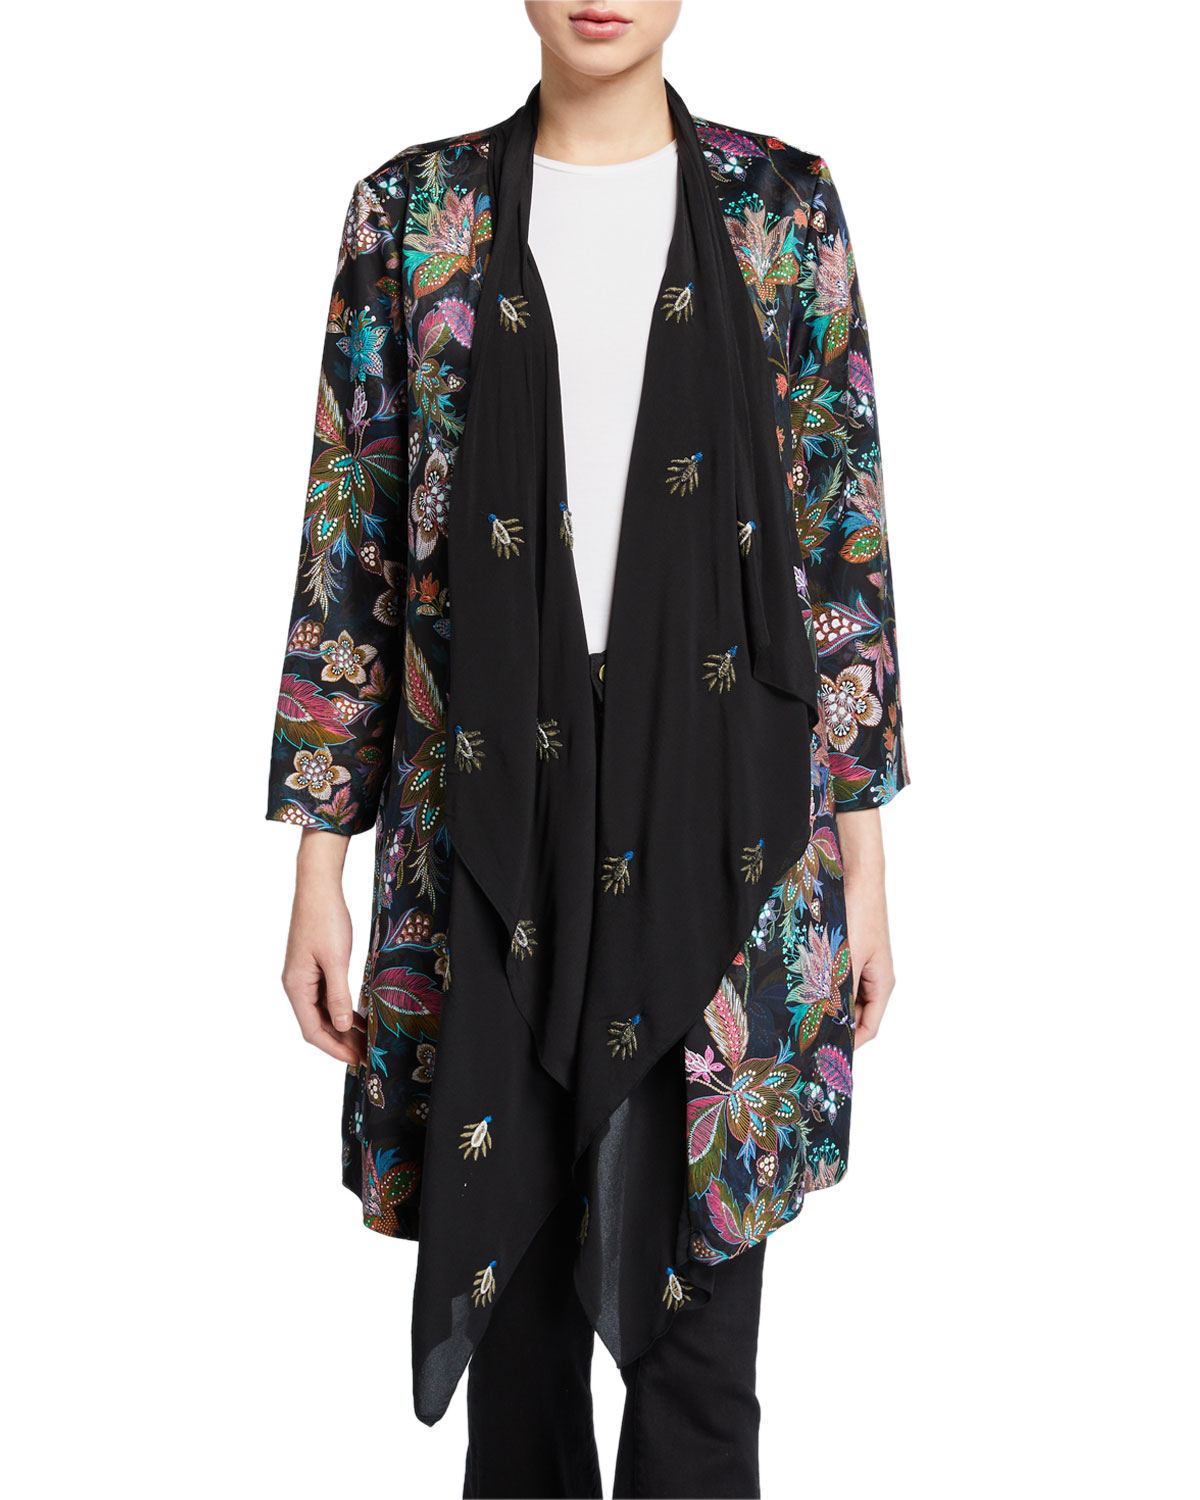 Johnny Was Tops PLUS SIZE FLORAL DRAPE CARDIGAN